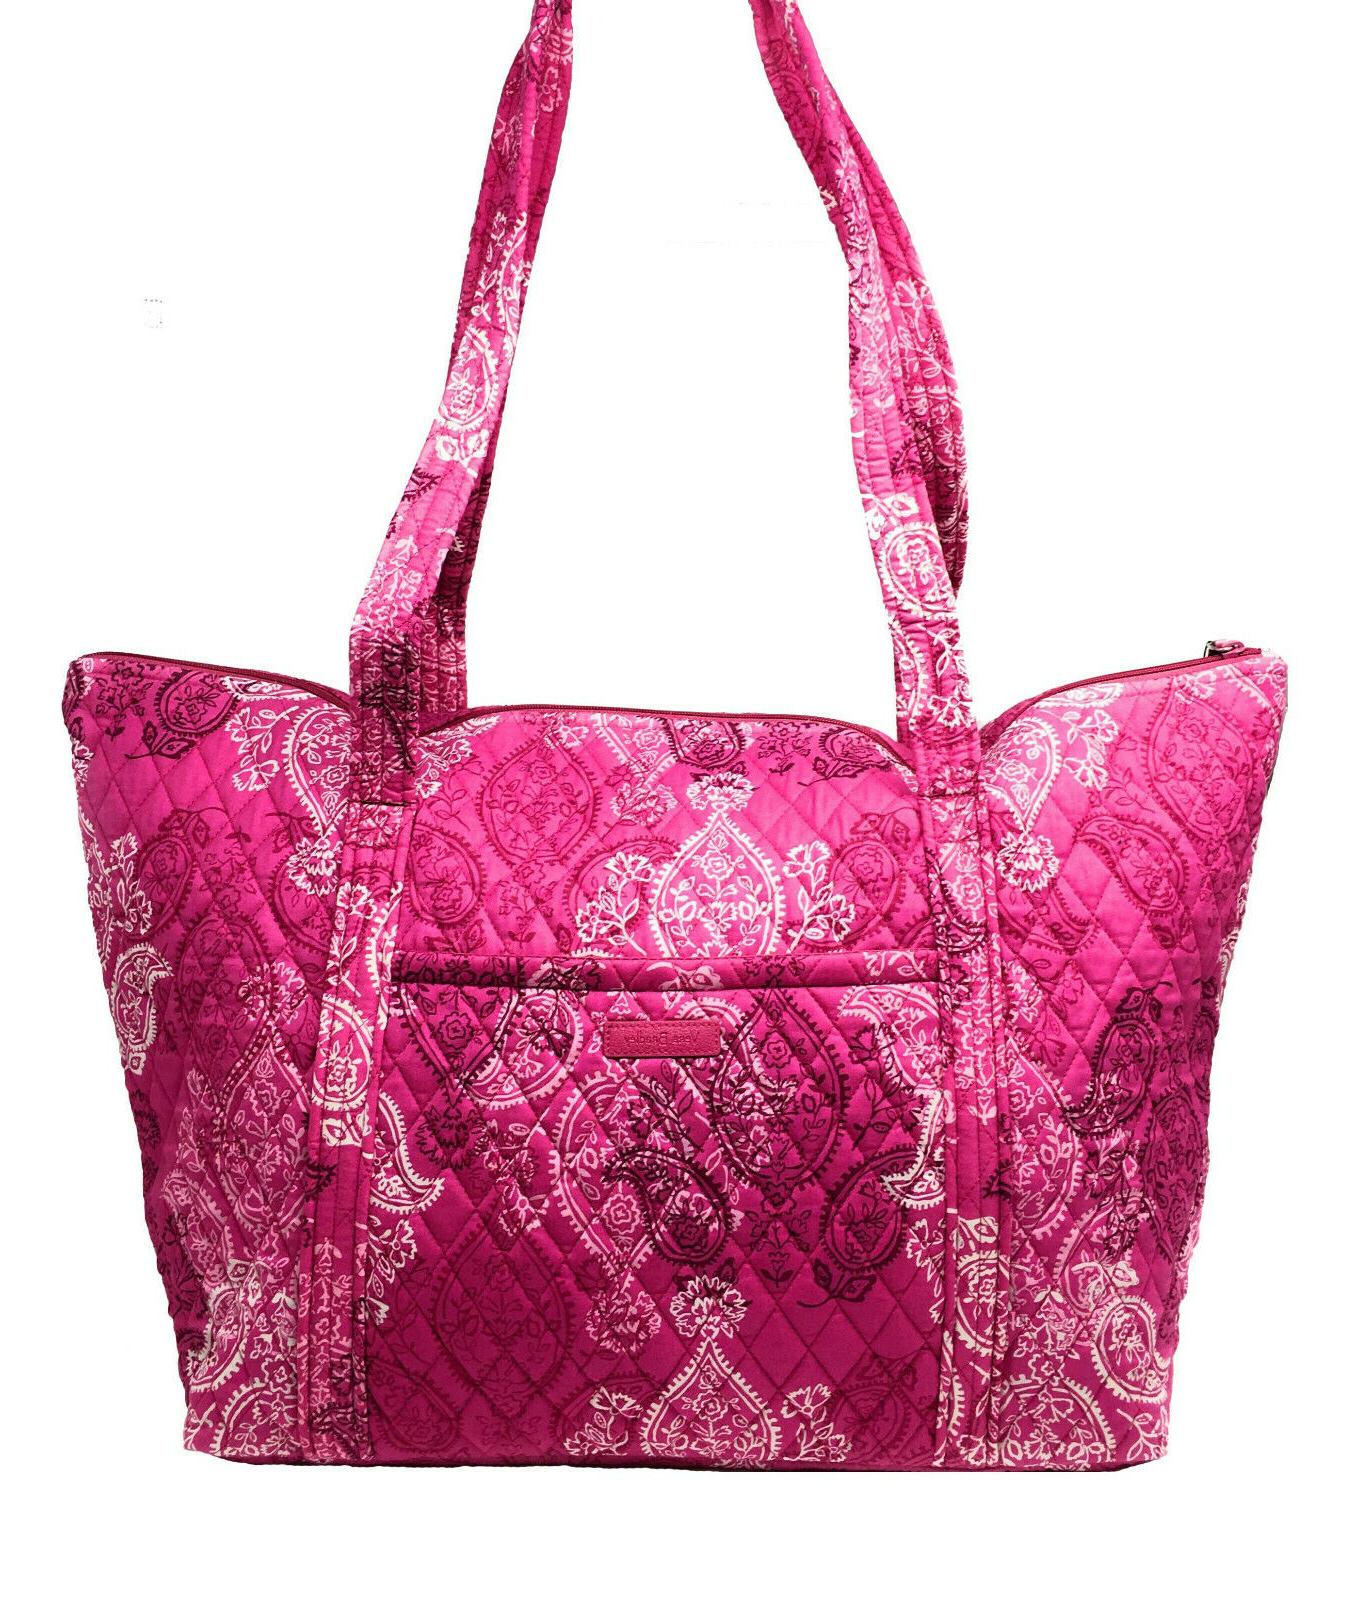 Vera in Stamped - NWT